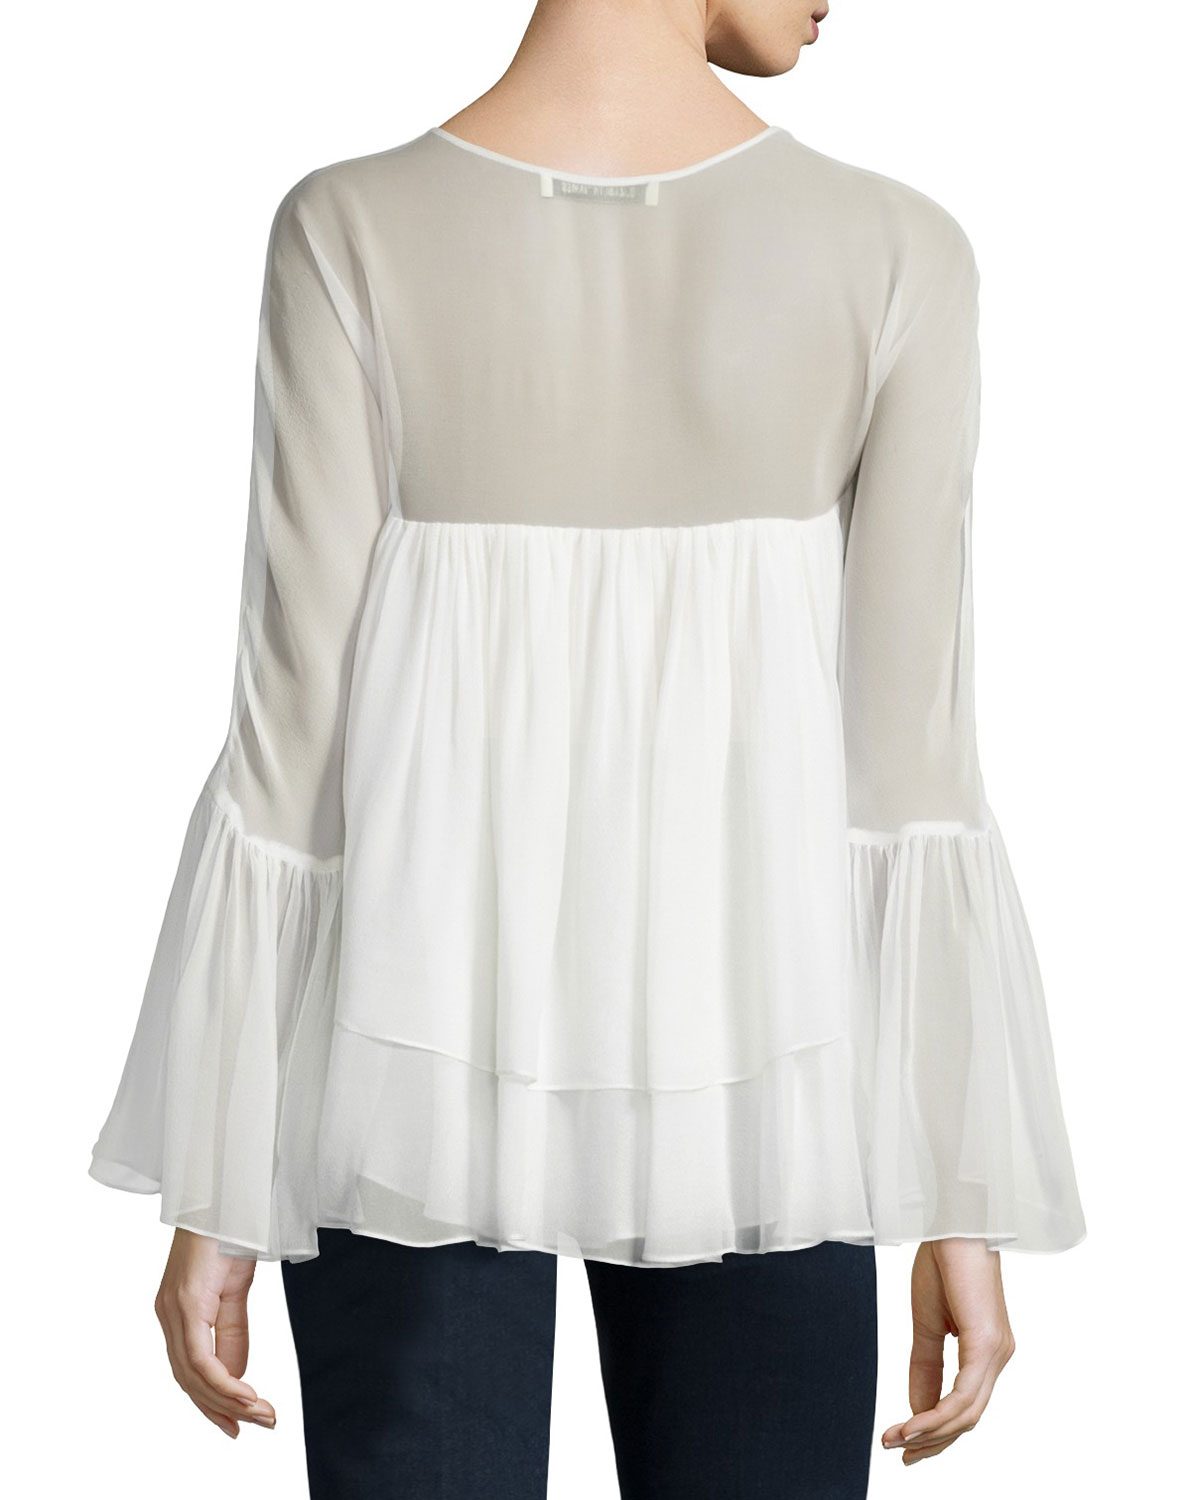 Elizabeth And James Woman Alanis Tiered Silk-chiffon Blouse Ivory Size M Elizabeth & James Outlet For Sale Discount Collections Cheap Sale New Arrival Buy Cheap Amazing Price Buy Online Cheap 7EjWO7A